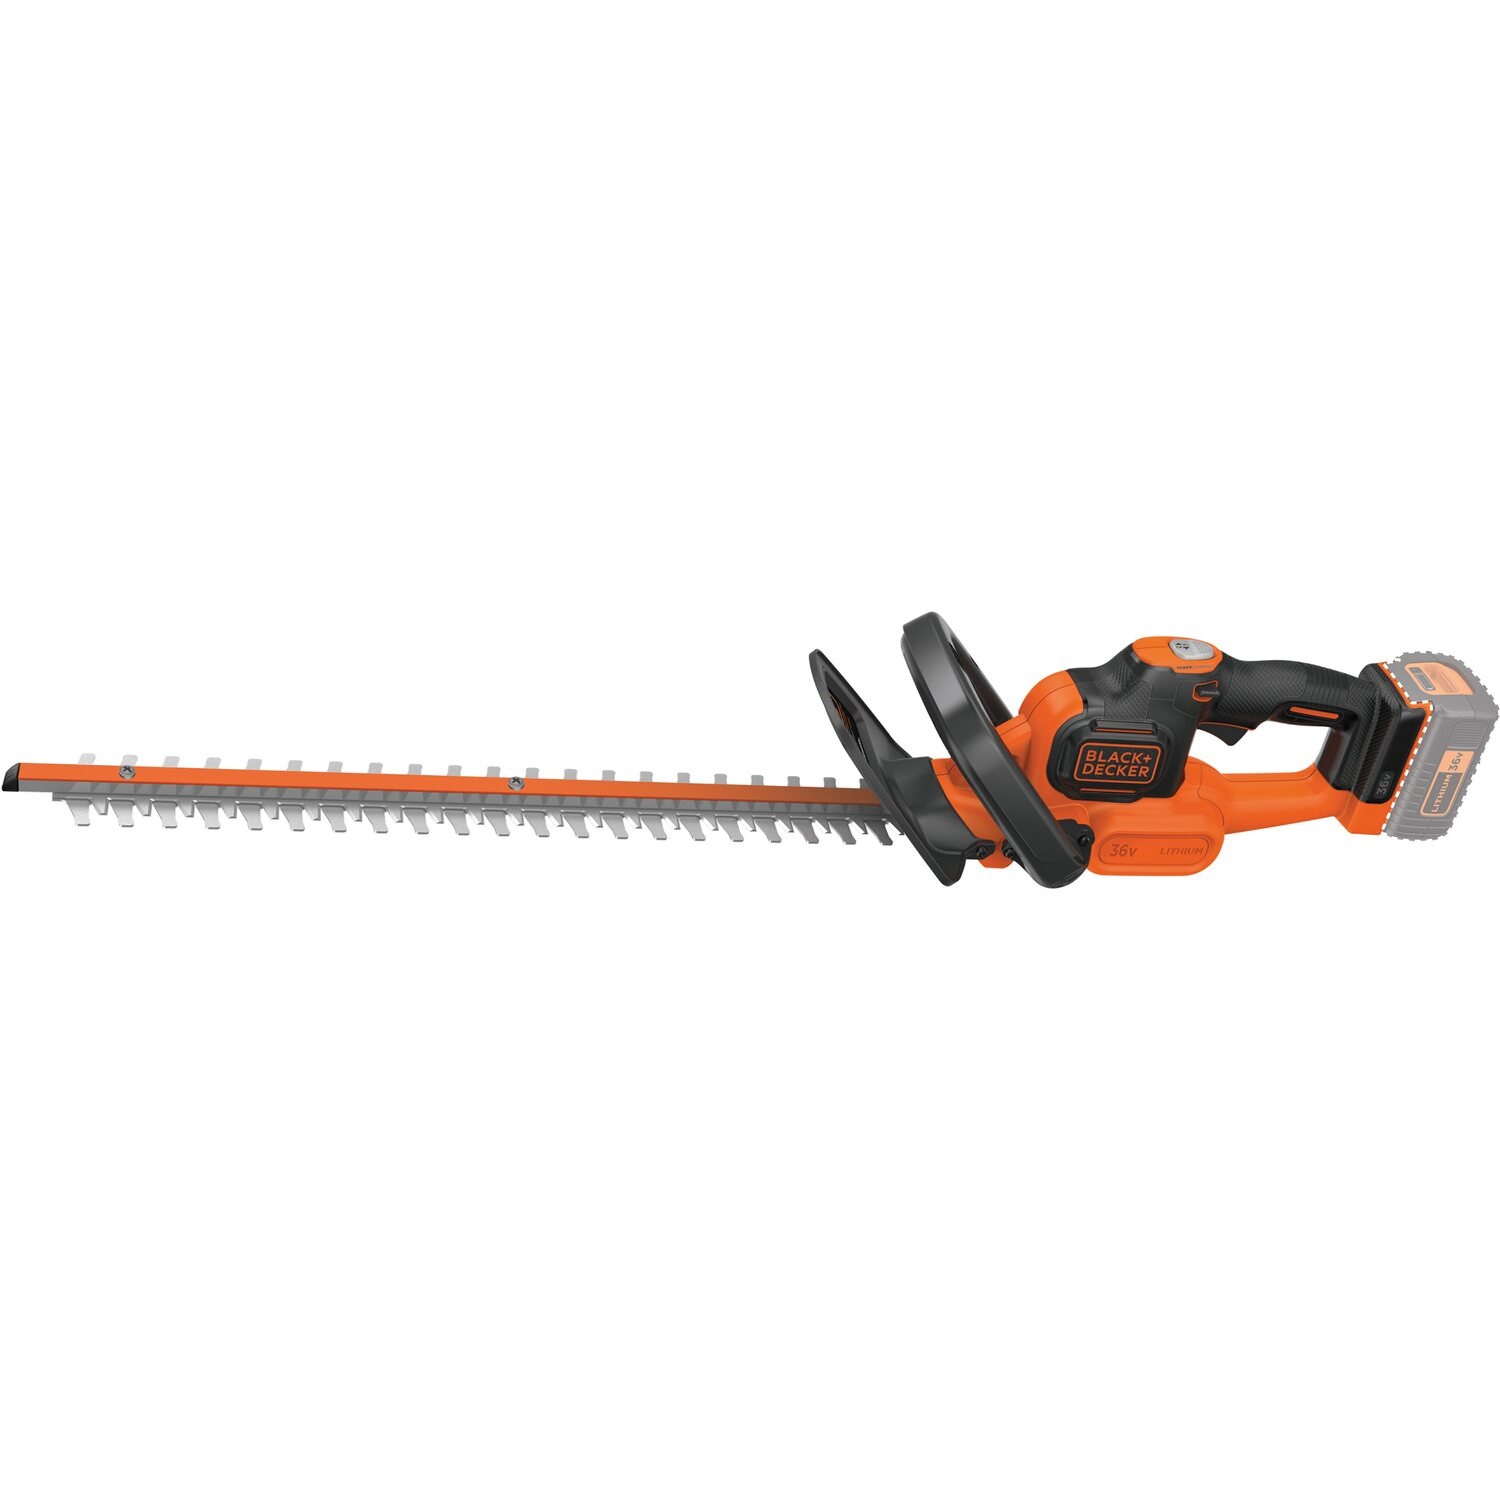 Gut gemocht Black+Decker Akku-Heckenschere Powercommand GTC3655PCLB Basis 36 V VA68